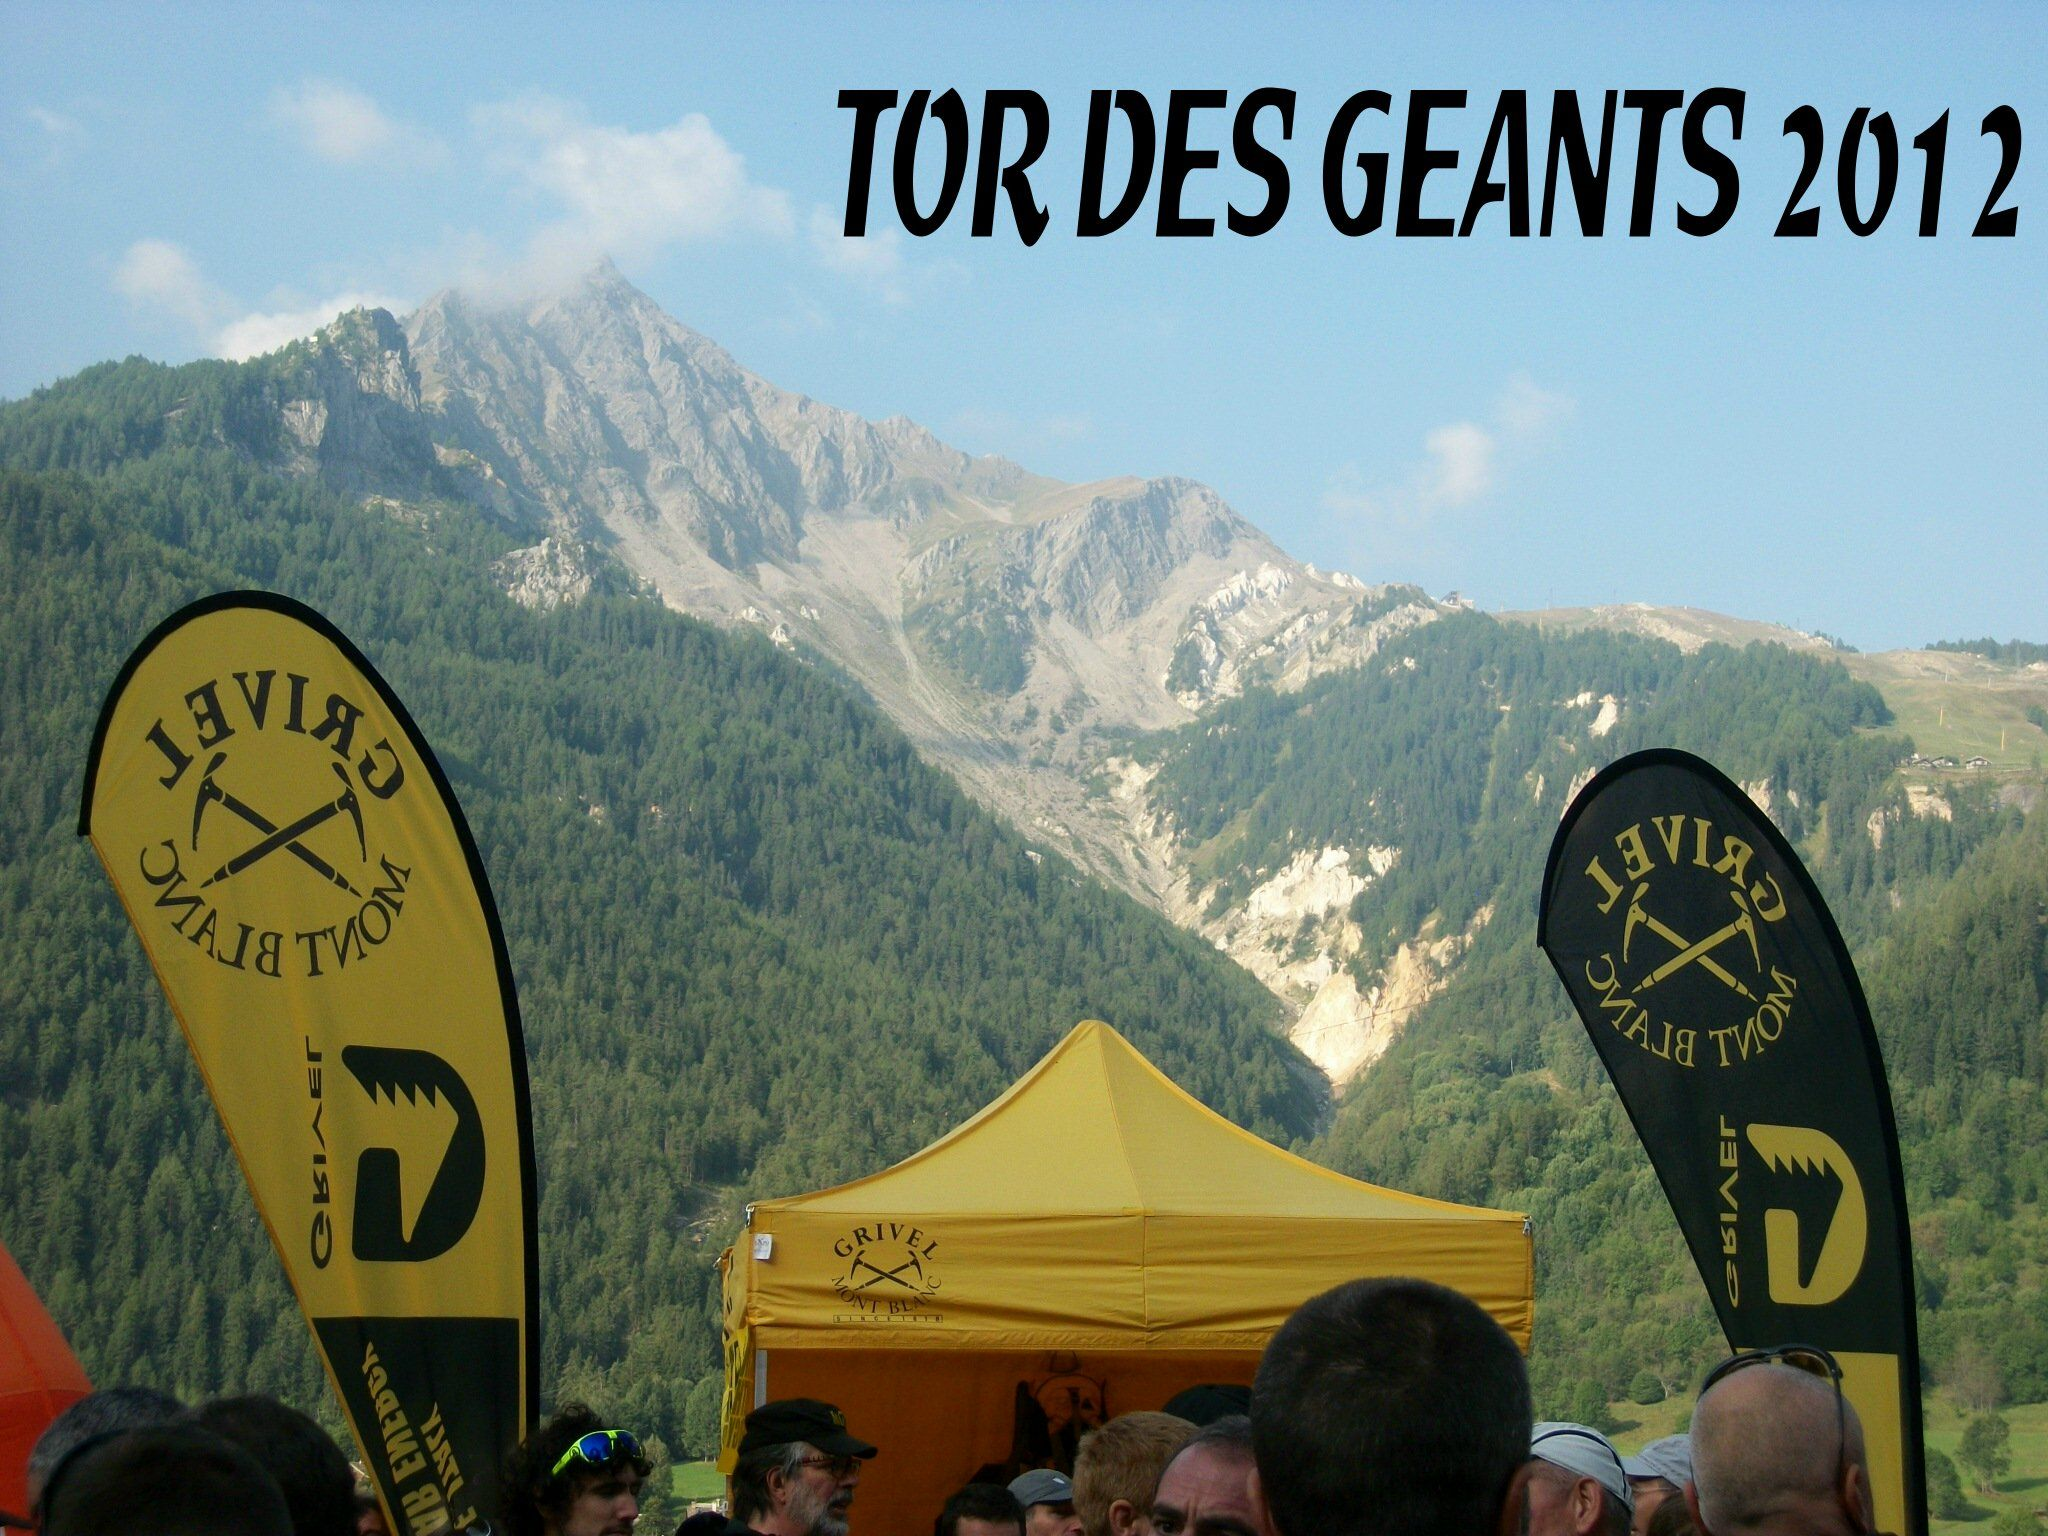 Copie de TOR DES GEANTS 2012 019